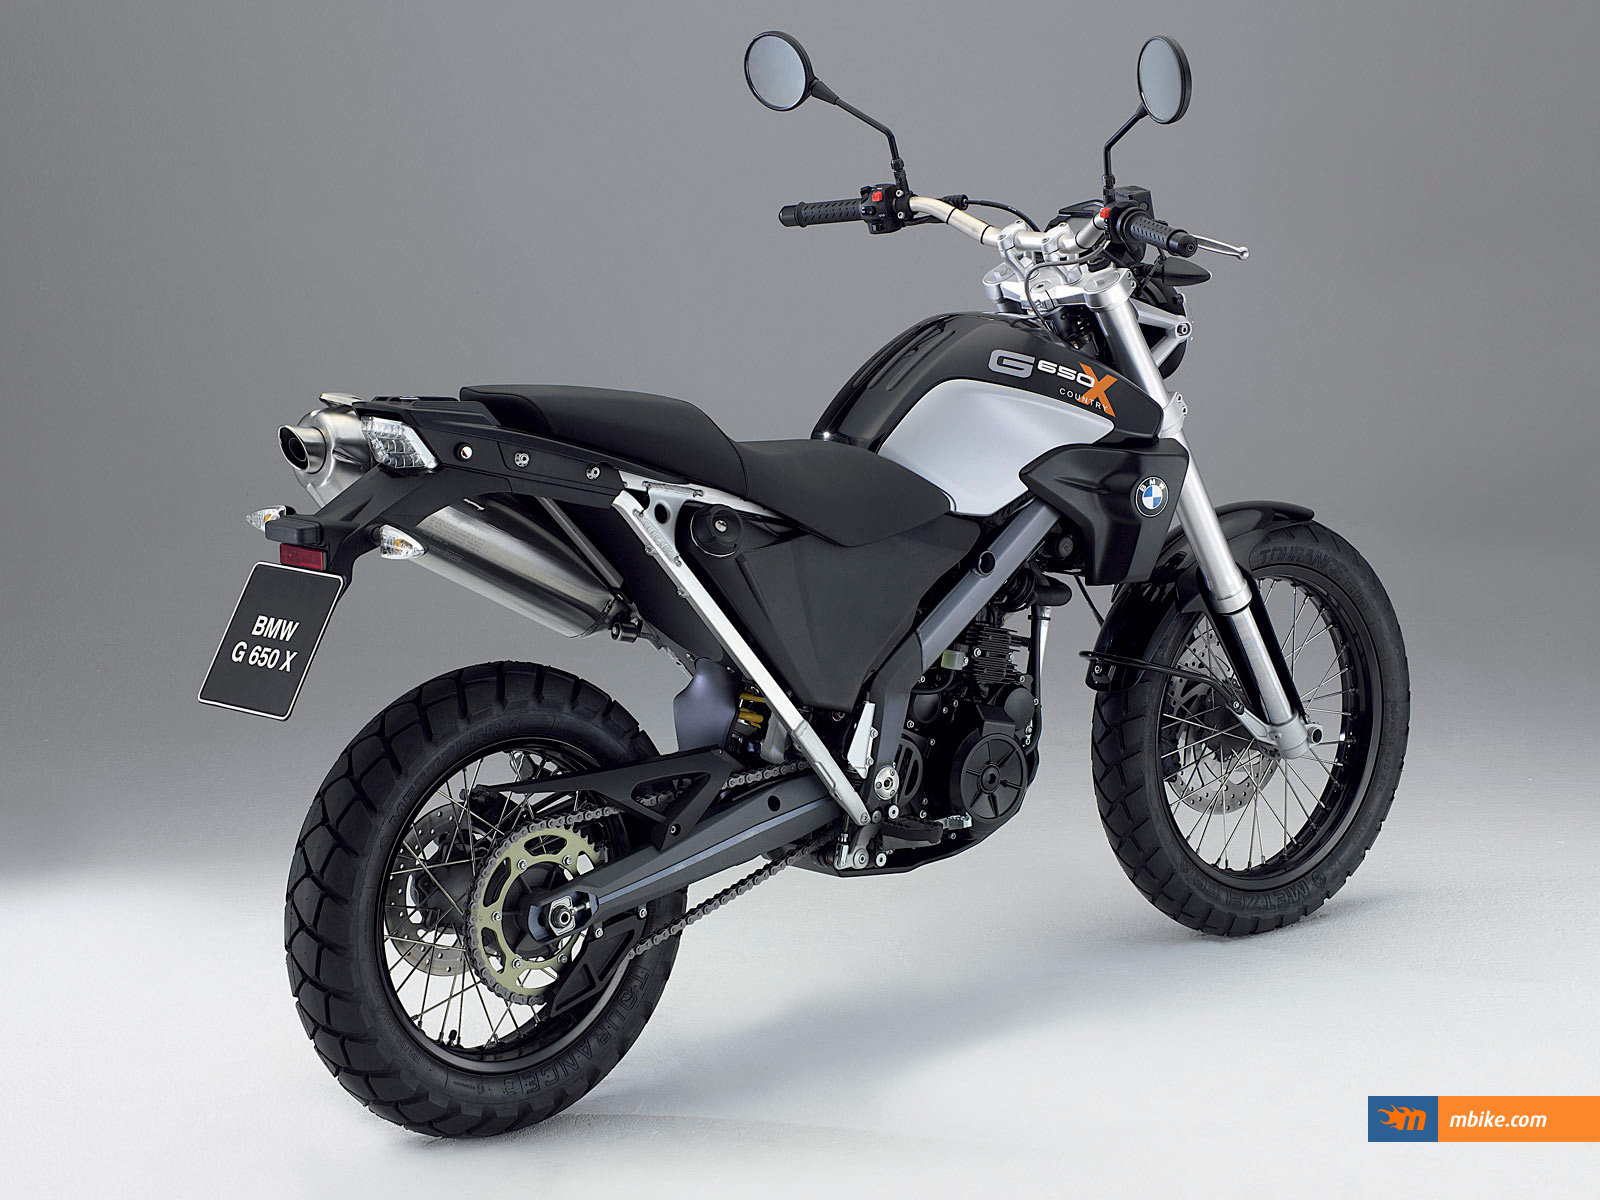 2007 Bmw G650 Xcountry Wallpaper Mbike Com